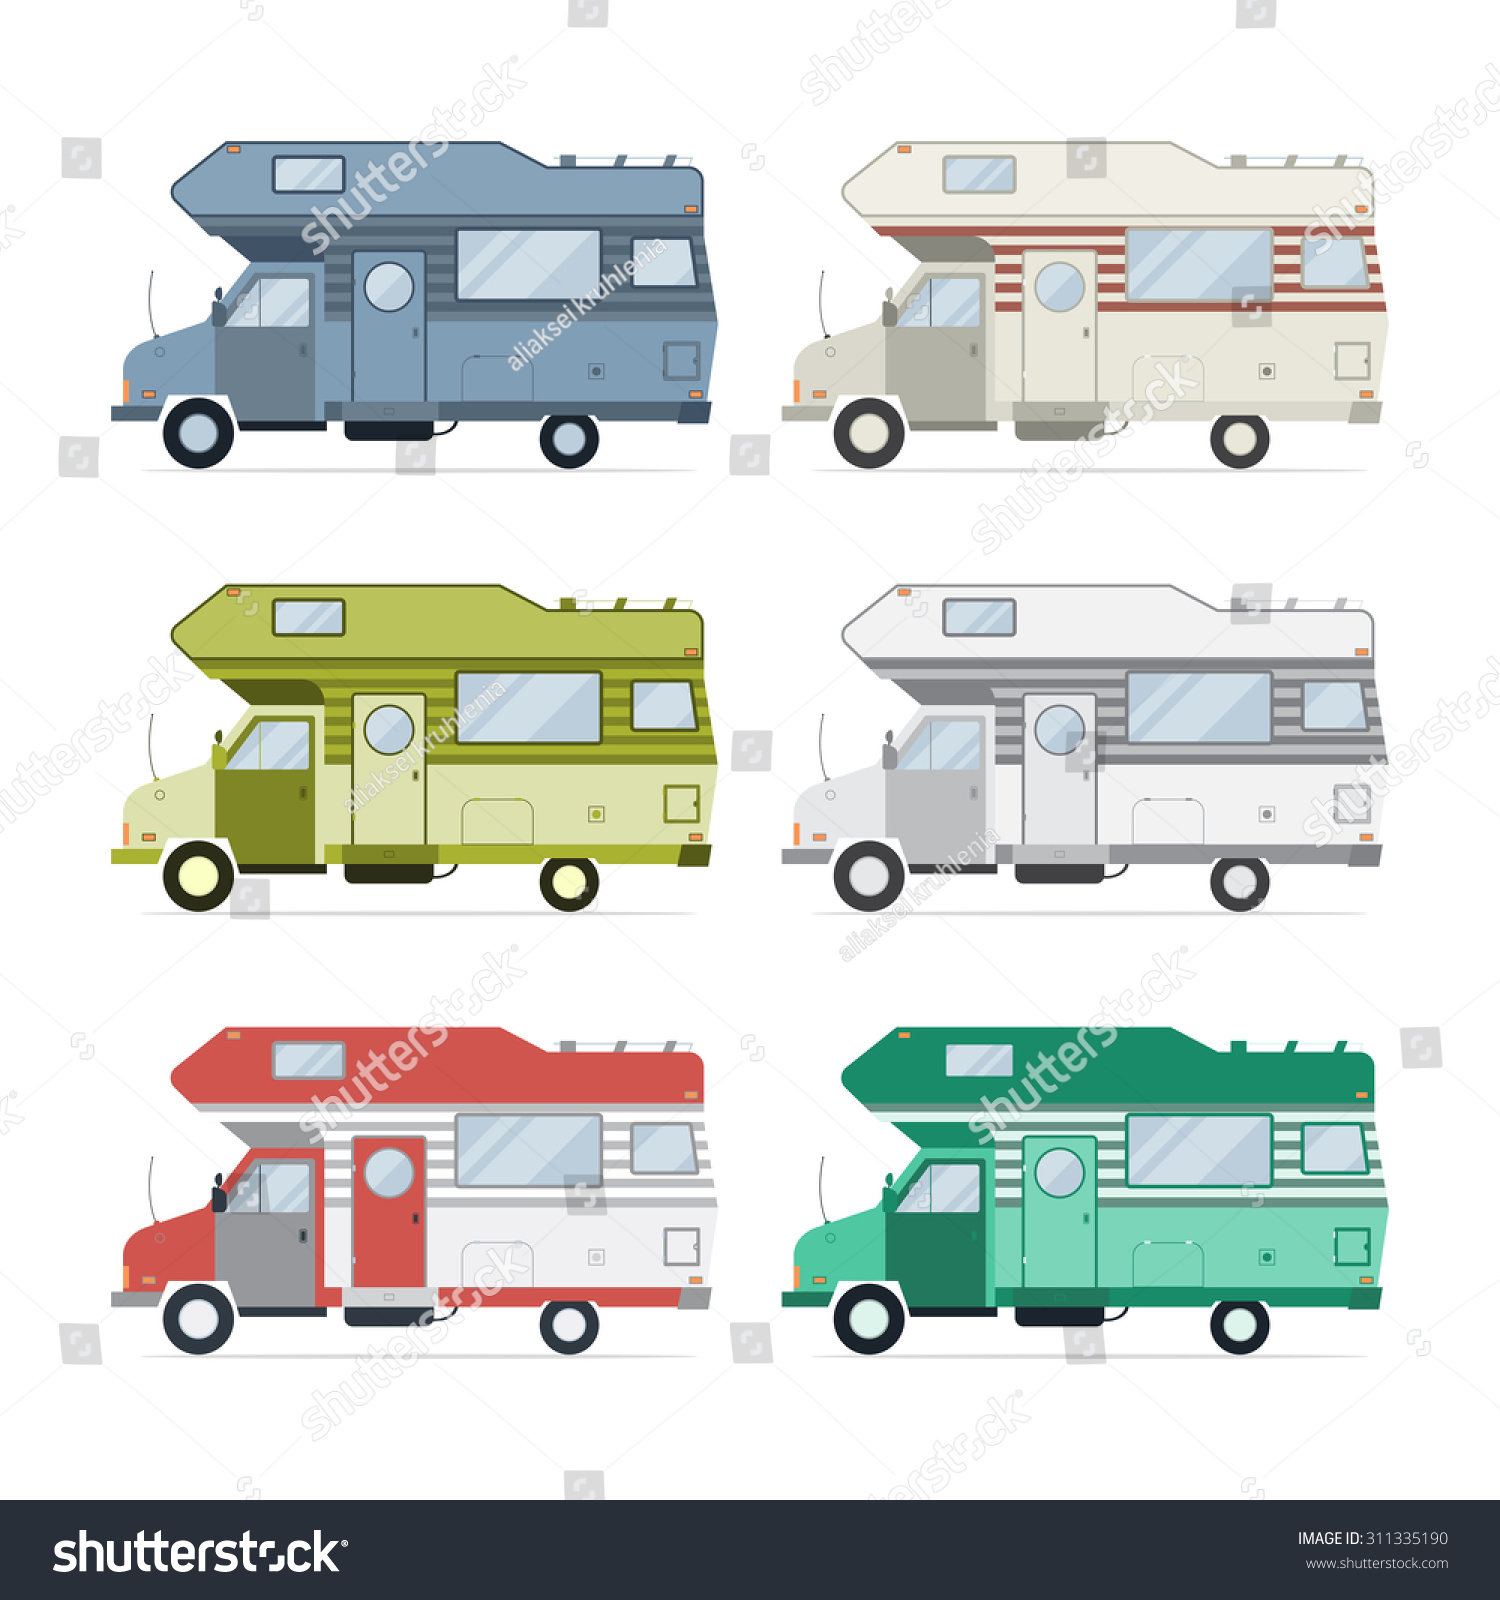 Vectors Illustrations Footage Music Camping Trailer Family Caravan Collection Set Of Recolored Traveler Truck Camper Flat Style Icons Isolated